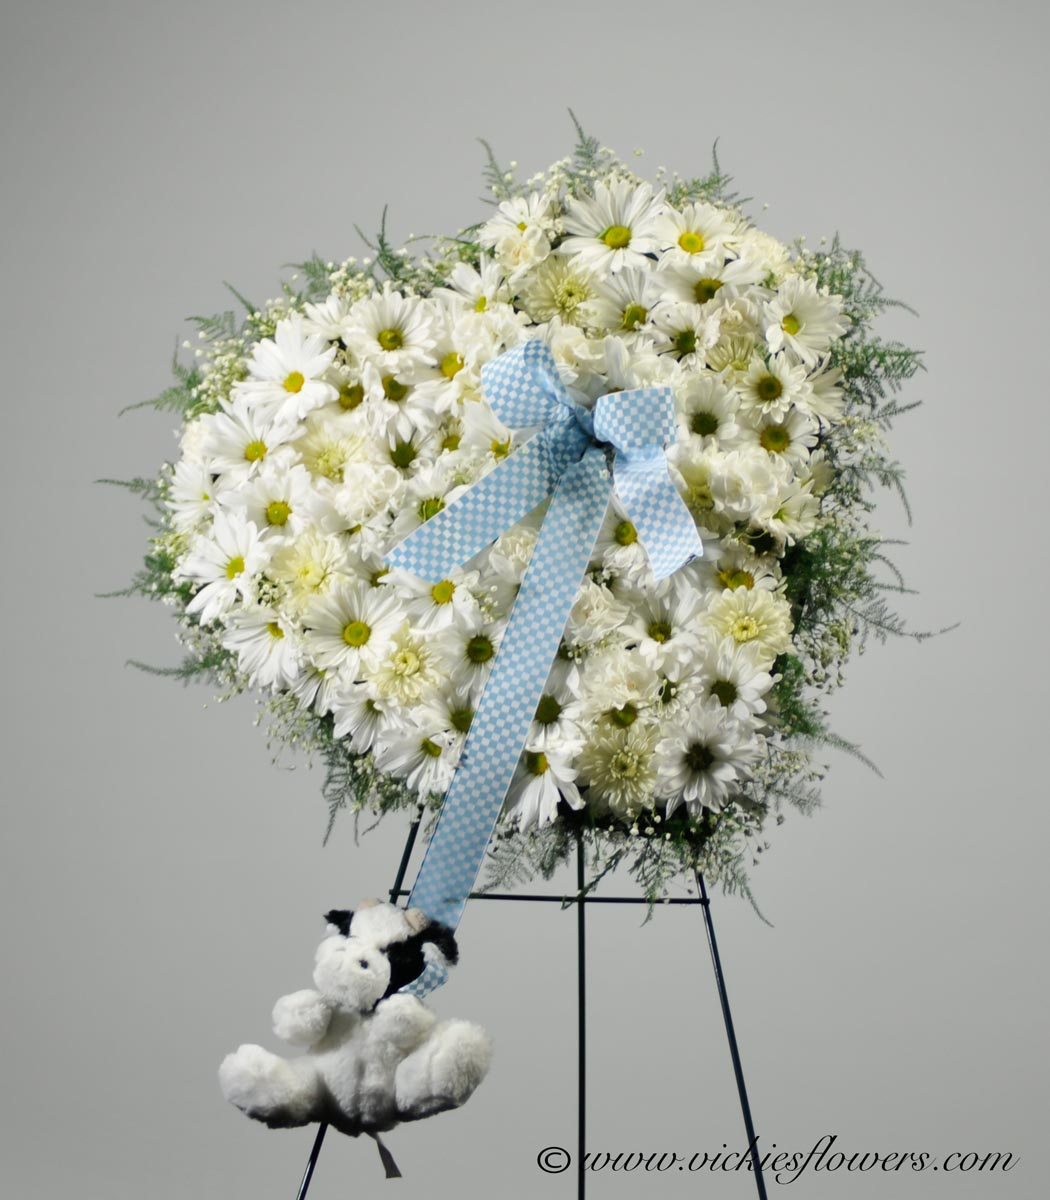 Funeral crosses standing sprays vickies flowers brighton co standing funeral spray 003 185 plus tax and delivery elegant white heart made with daisies and white izmirmasajfo